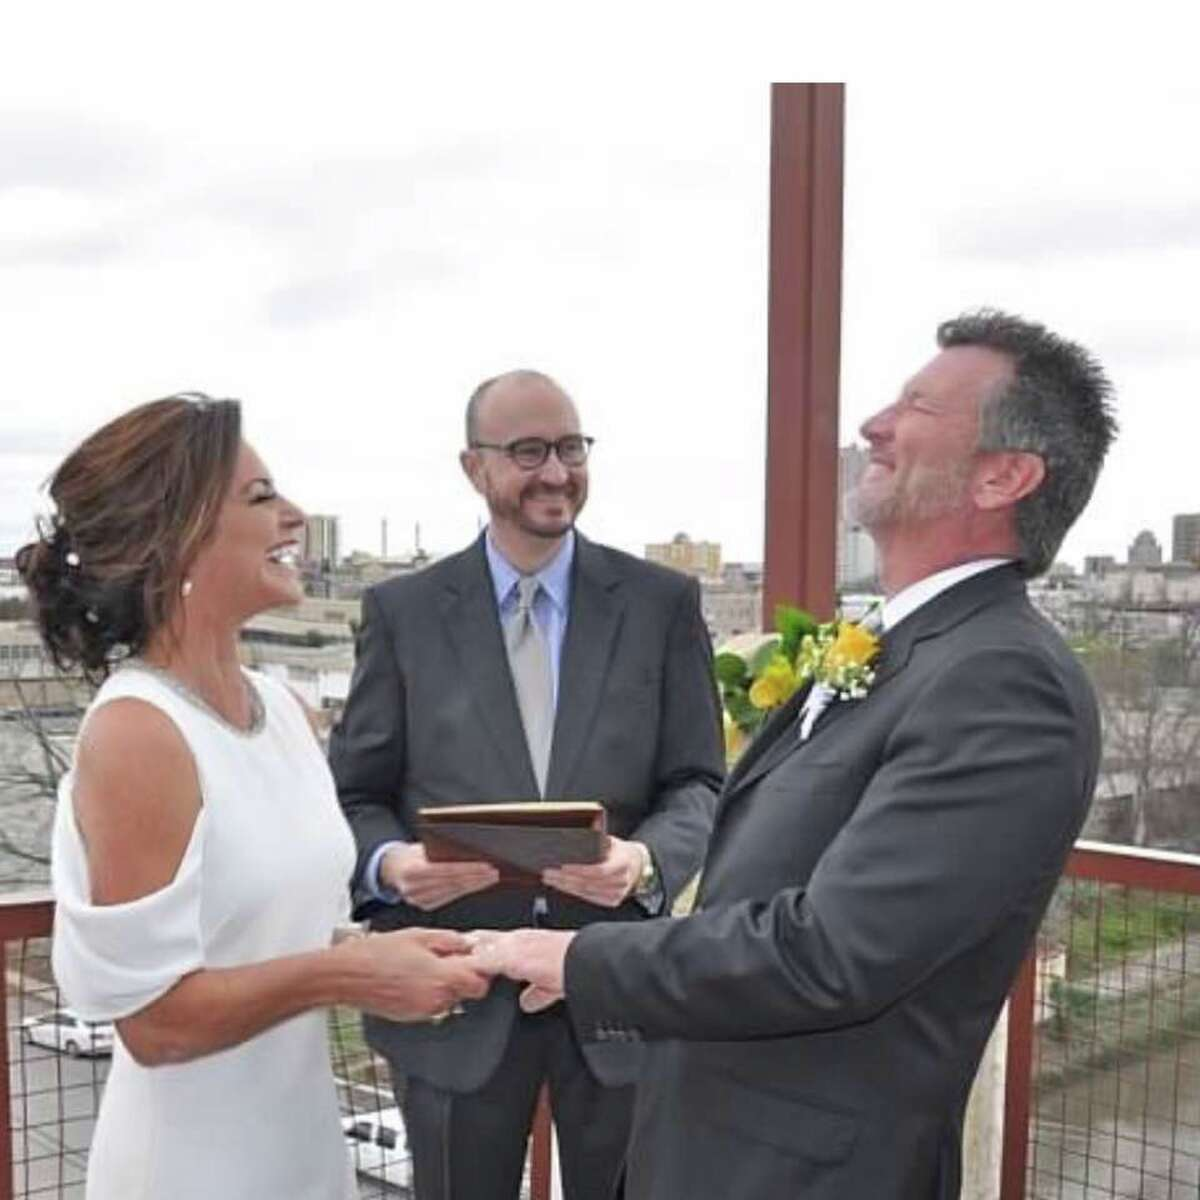 KSAT-TV anchorwoman Ursula Pari and second husband Patrick MacLeod got married recently atop San Antonio's picturesque Paramour bar in what she called 'a pop-up wedding.'